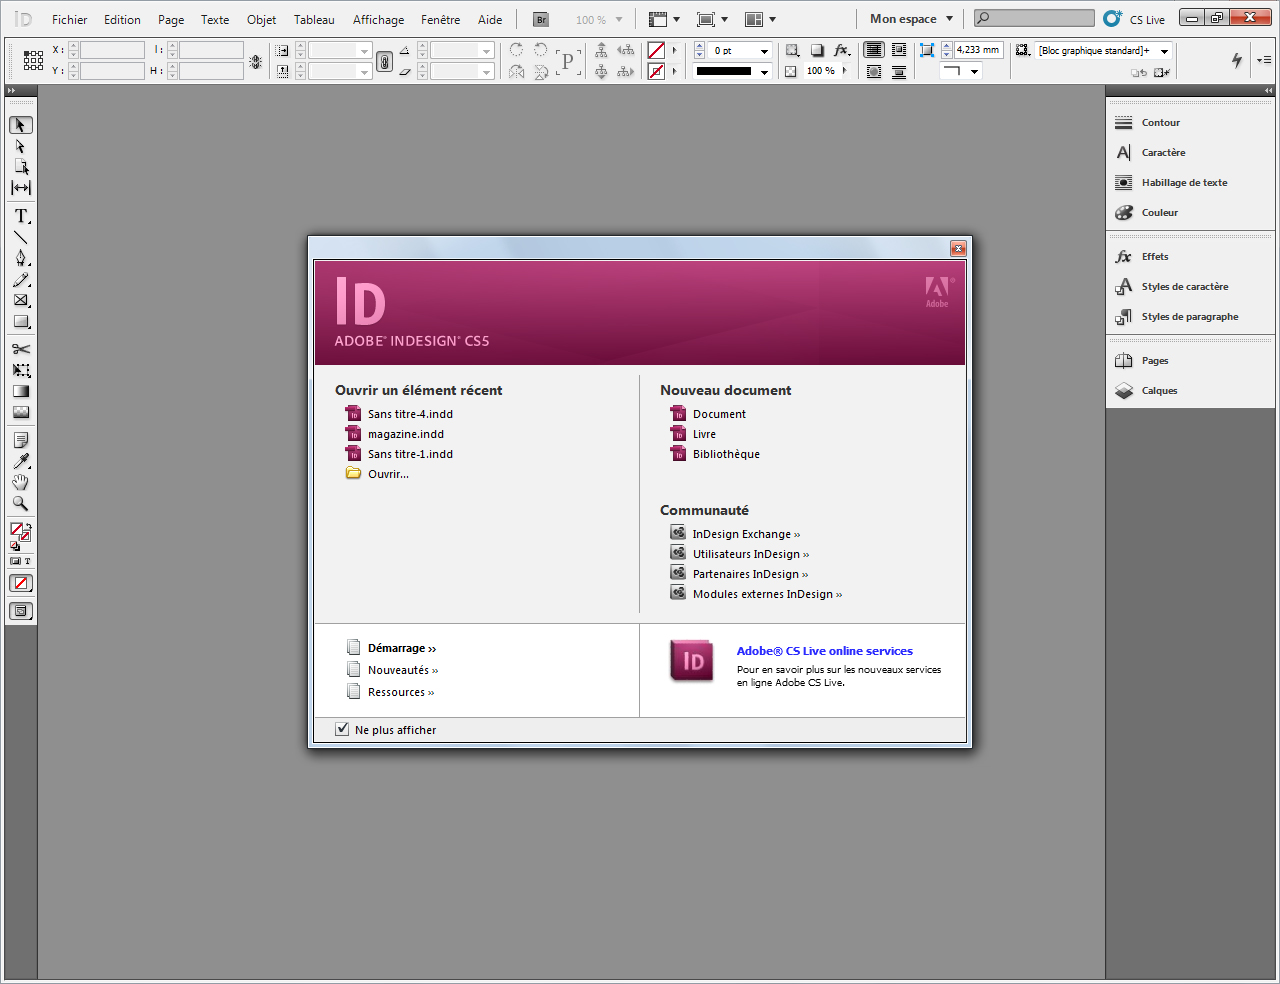 Indesign La Mise En Page Avec Adobe Indesign Openclassrooms